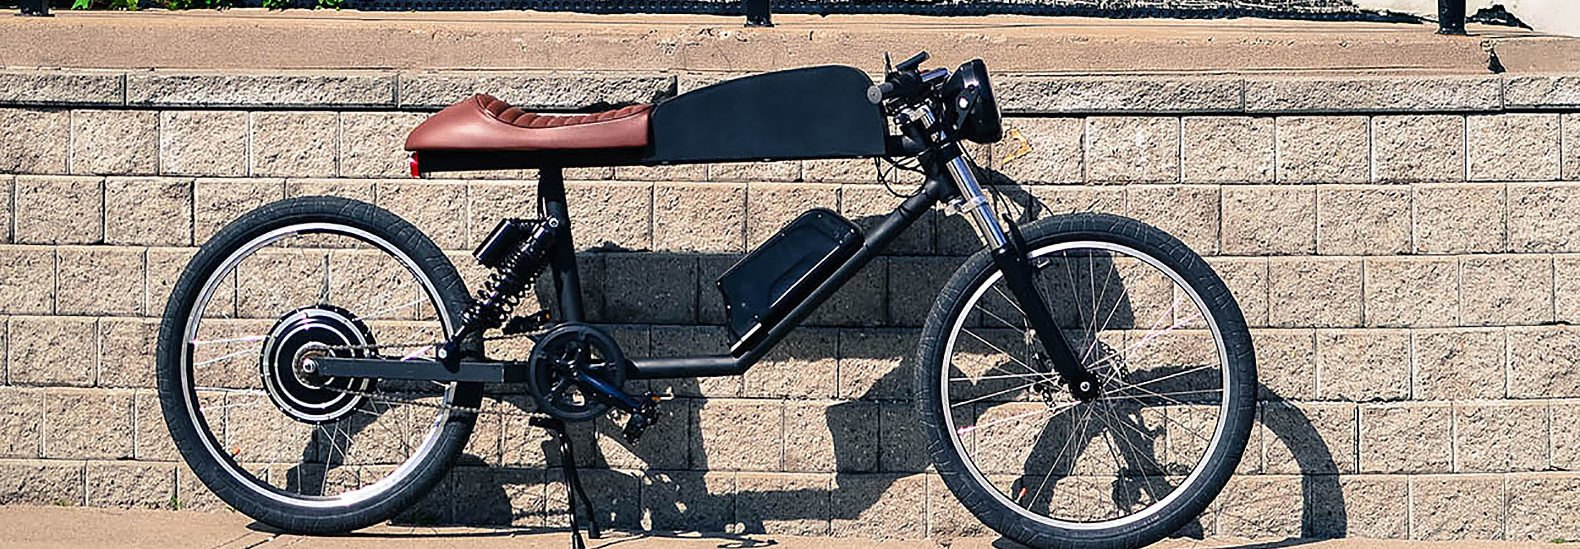 Tempus Launches Stylish E Bikes Modeled After Vintage Cafe Racers